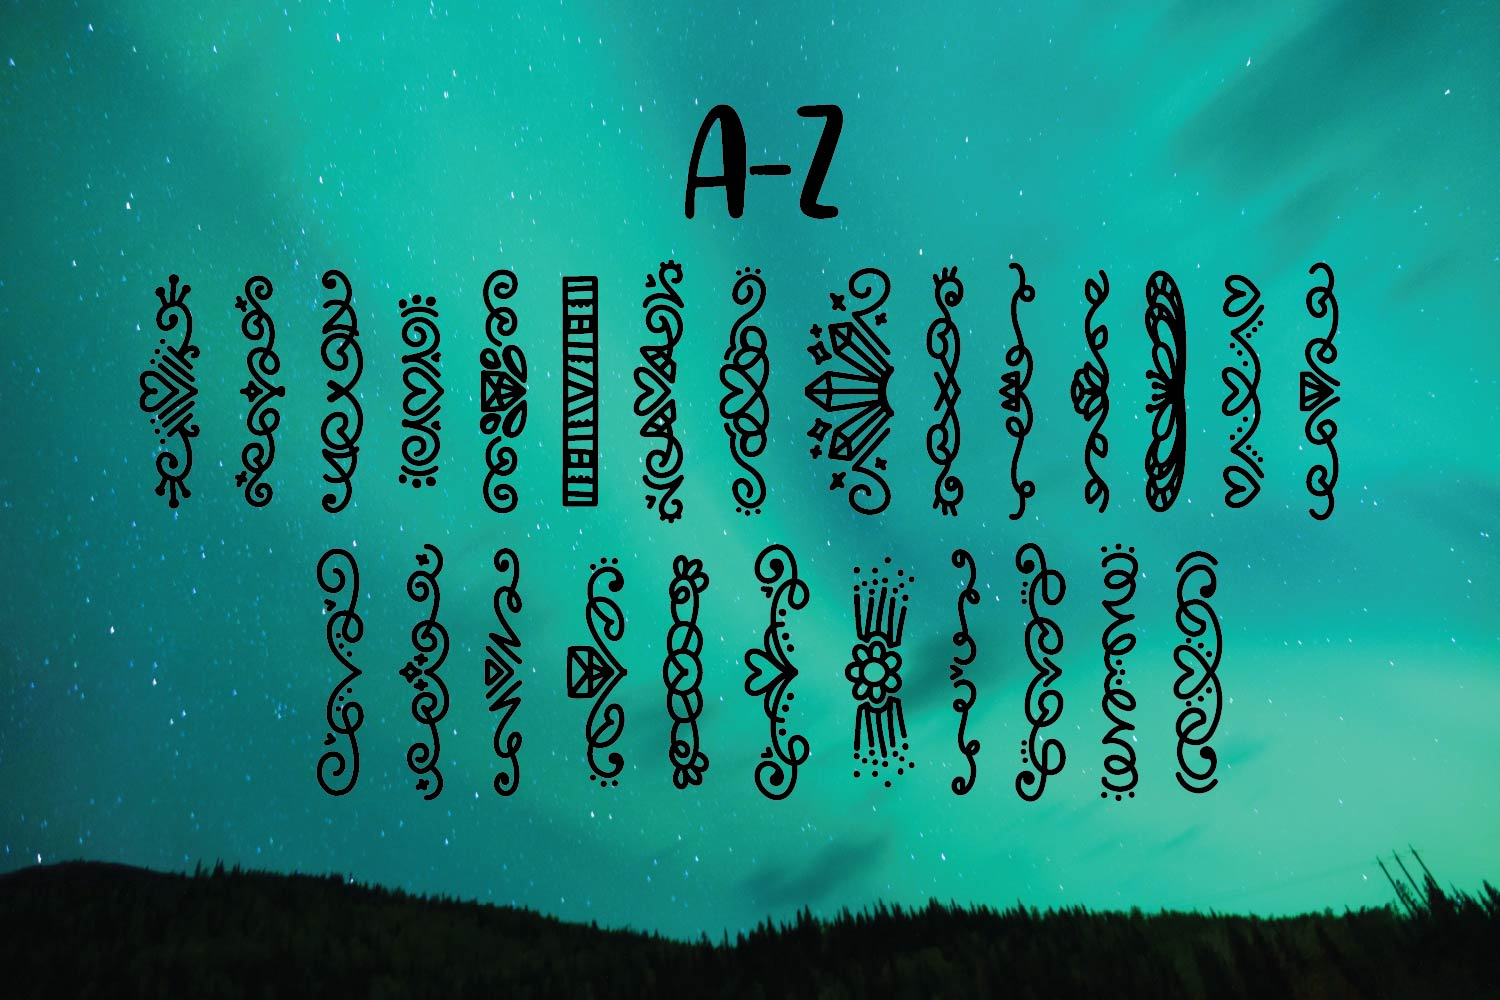 Storybook Banners - A Dingbat Font Full of Magical Borders example image 9